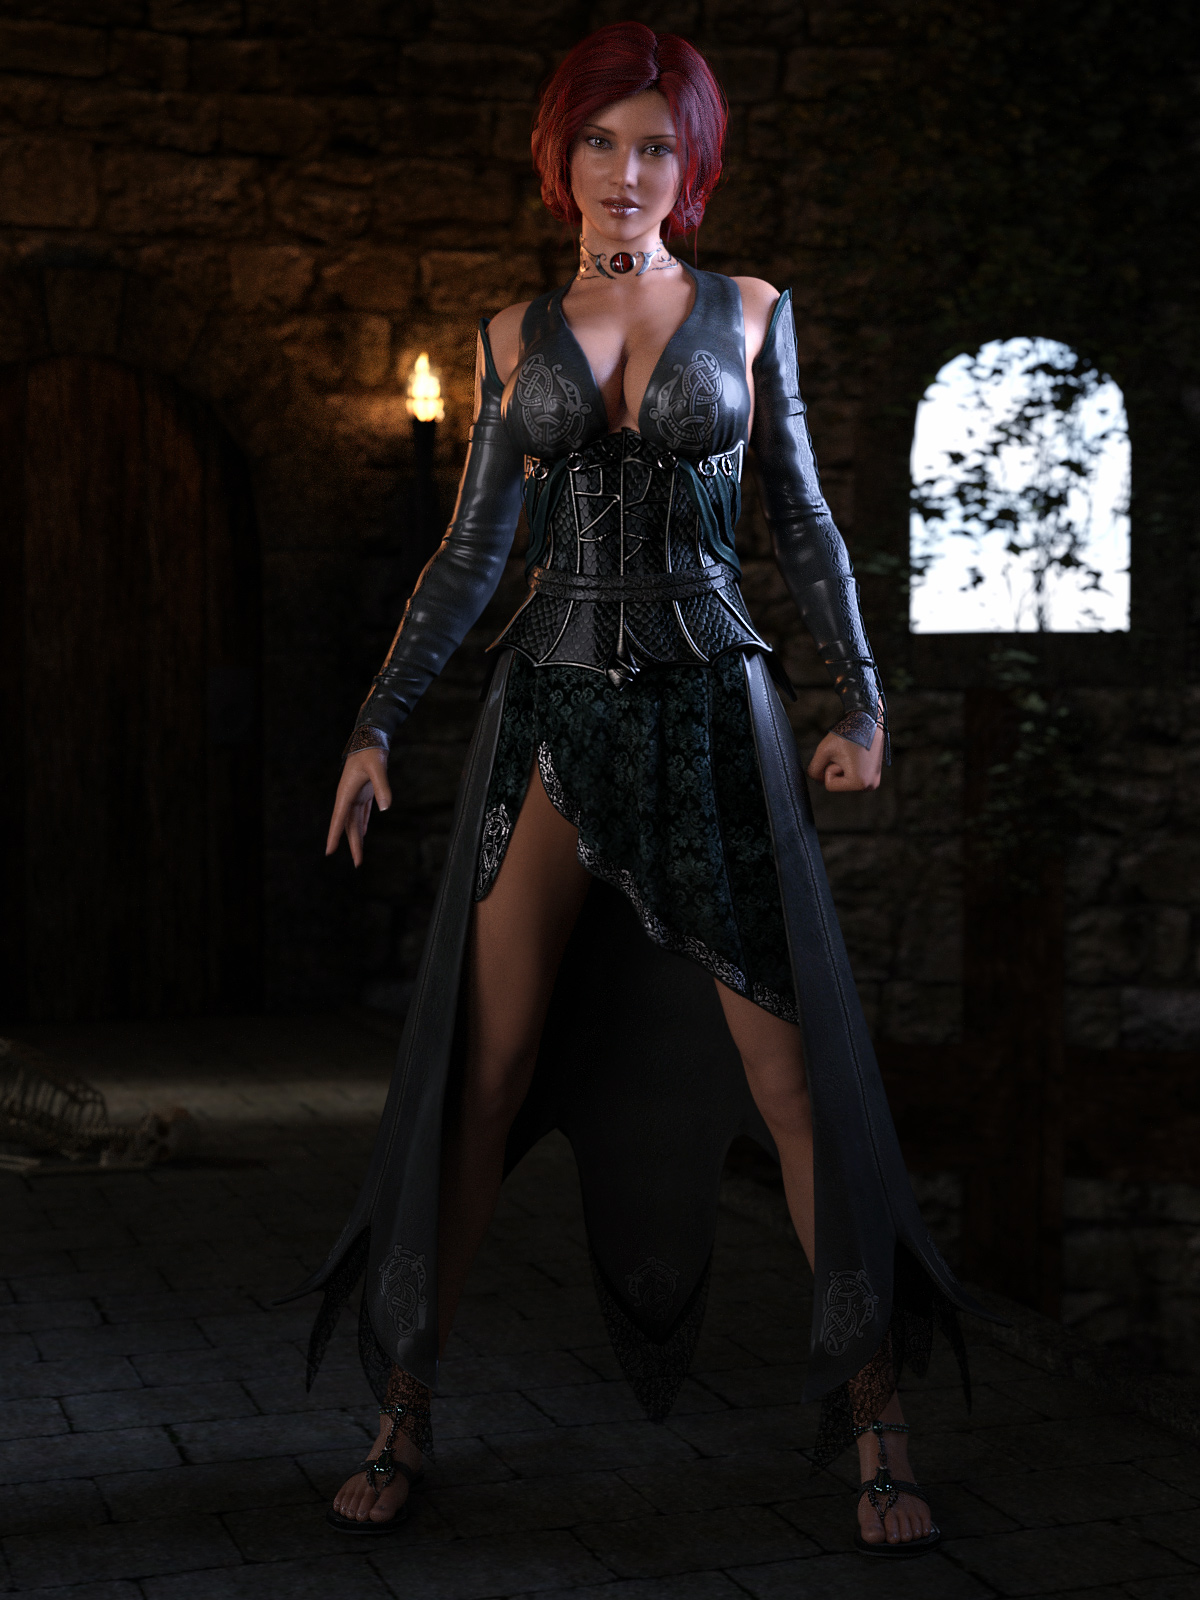 Triss-like Sorceress by stoper